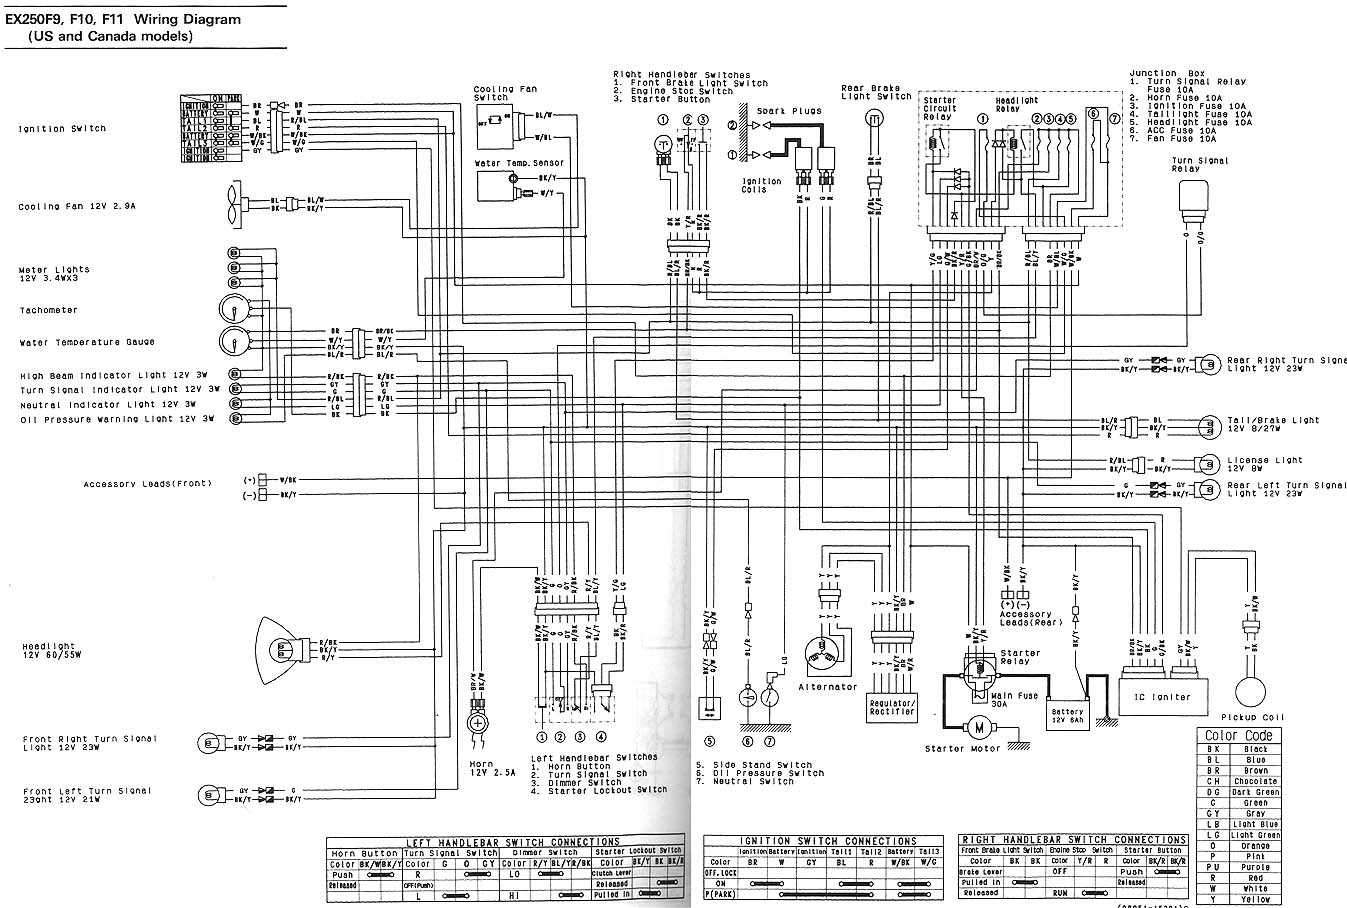 kawasaki ex500 wiring diagrams turn signals don't work; how big of an issue is this ... 2008 kawasaki 650r wiring diagrams